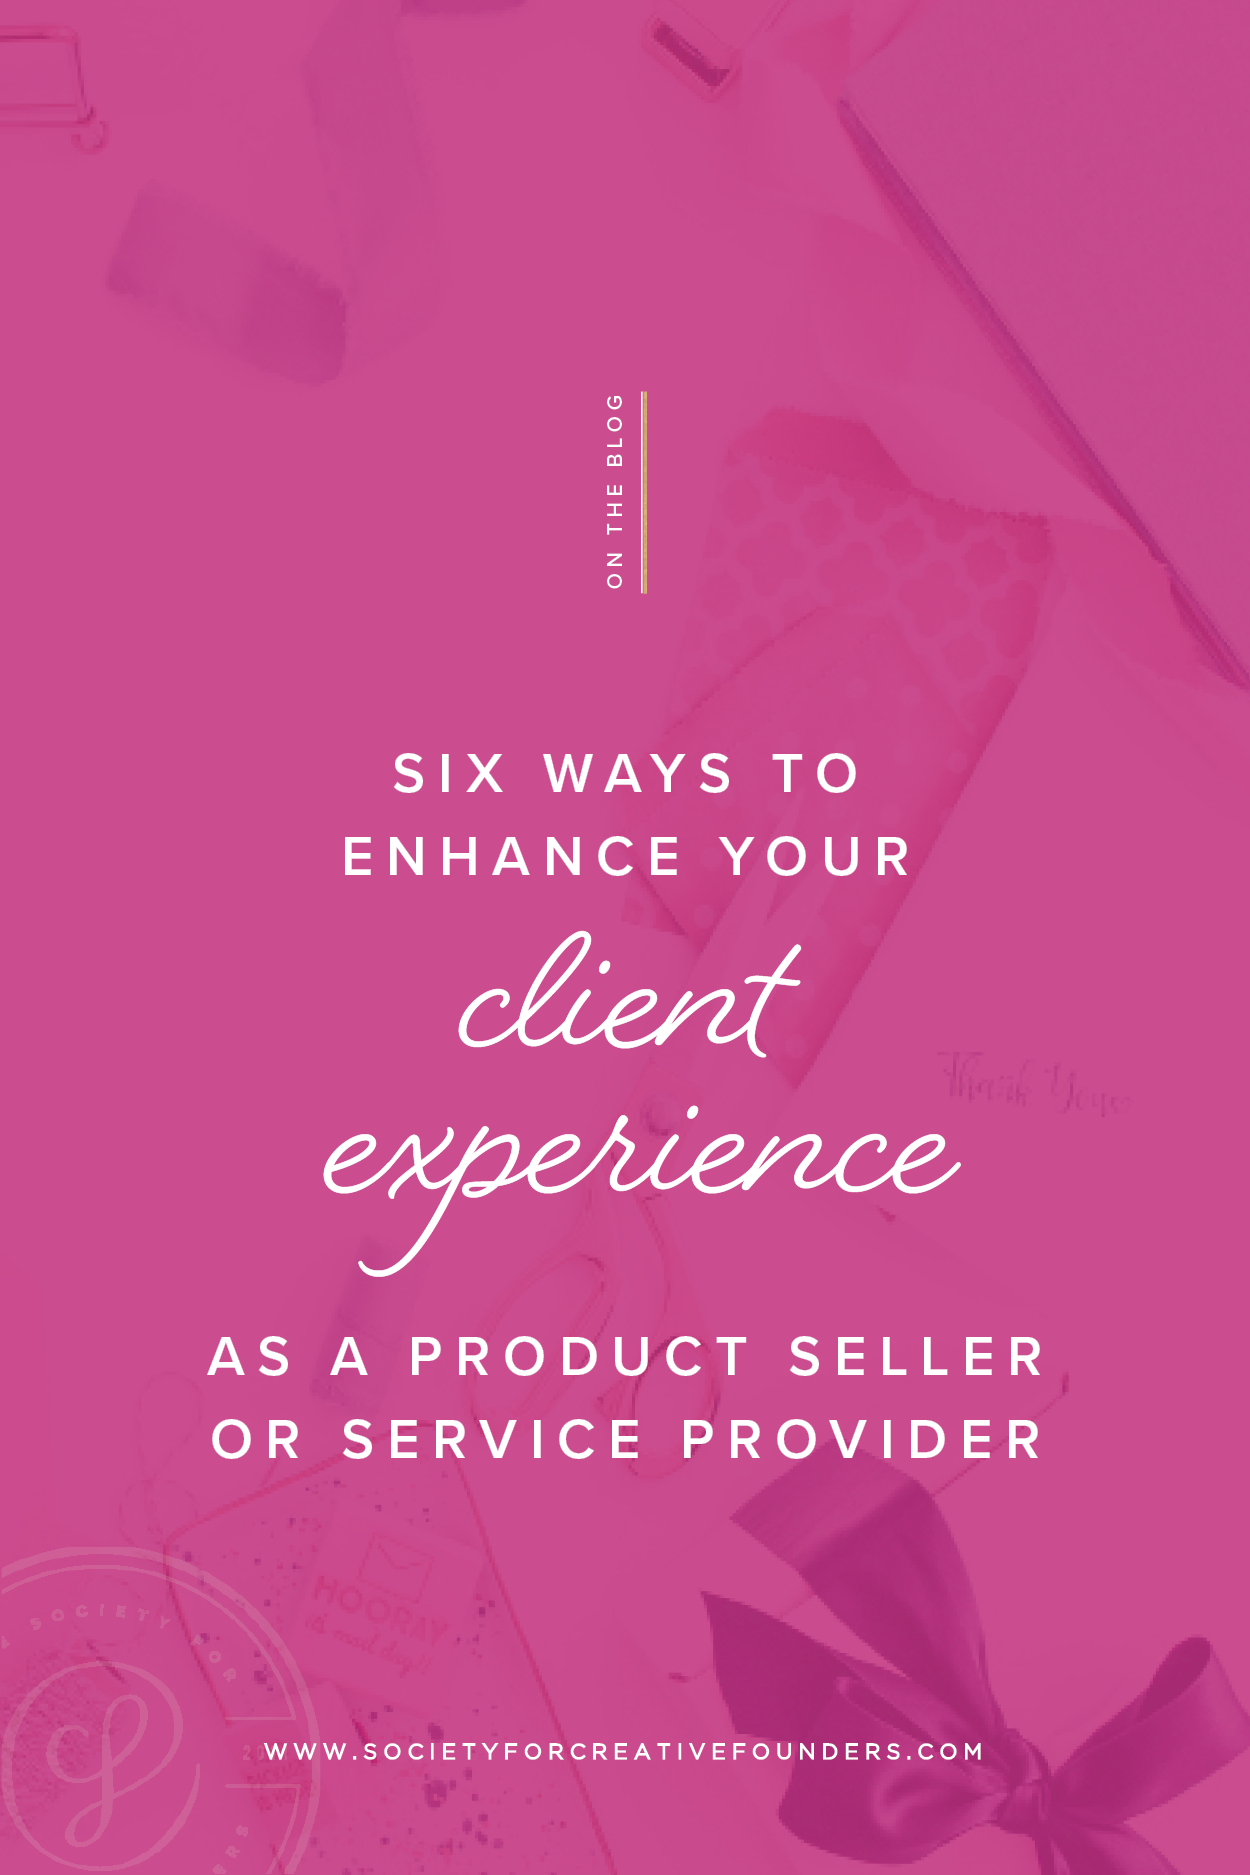 Six ways to enhance your client experience as a product seller or service provider - Society for Creative Founders